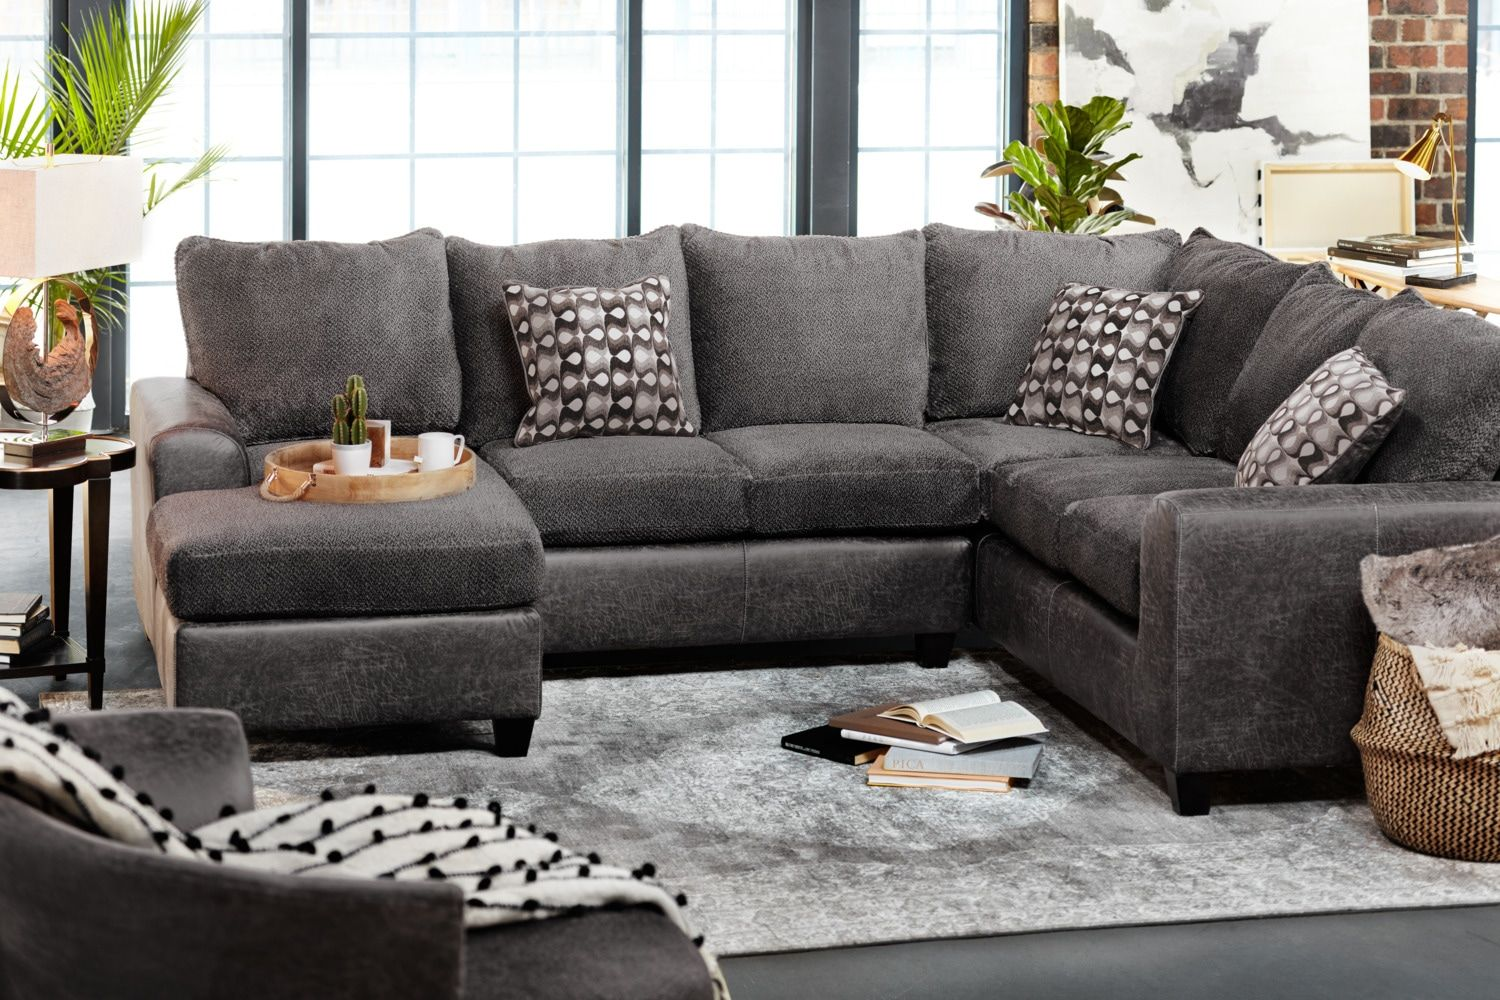 Brando 3 Piece Sectional With Modular Chaise In 2020 3 Piece Sectional Sofa Value City Furniture Living Room Sectional